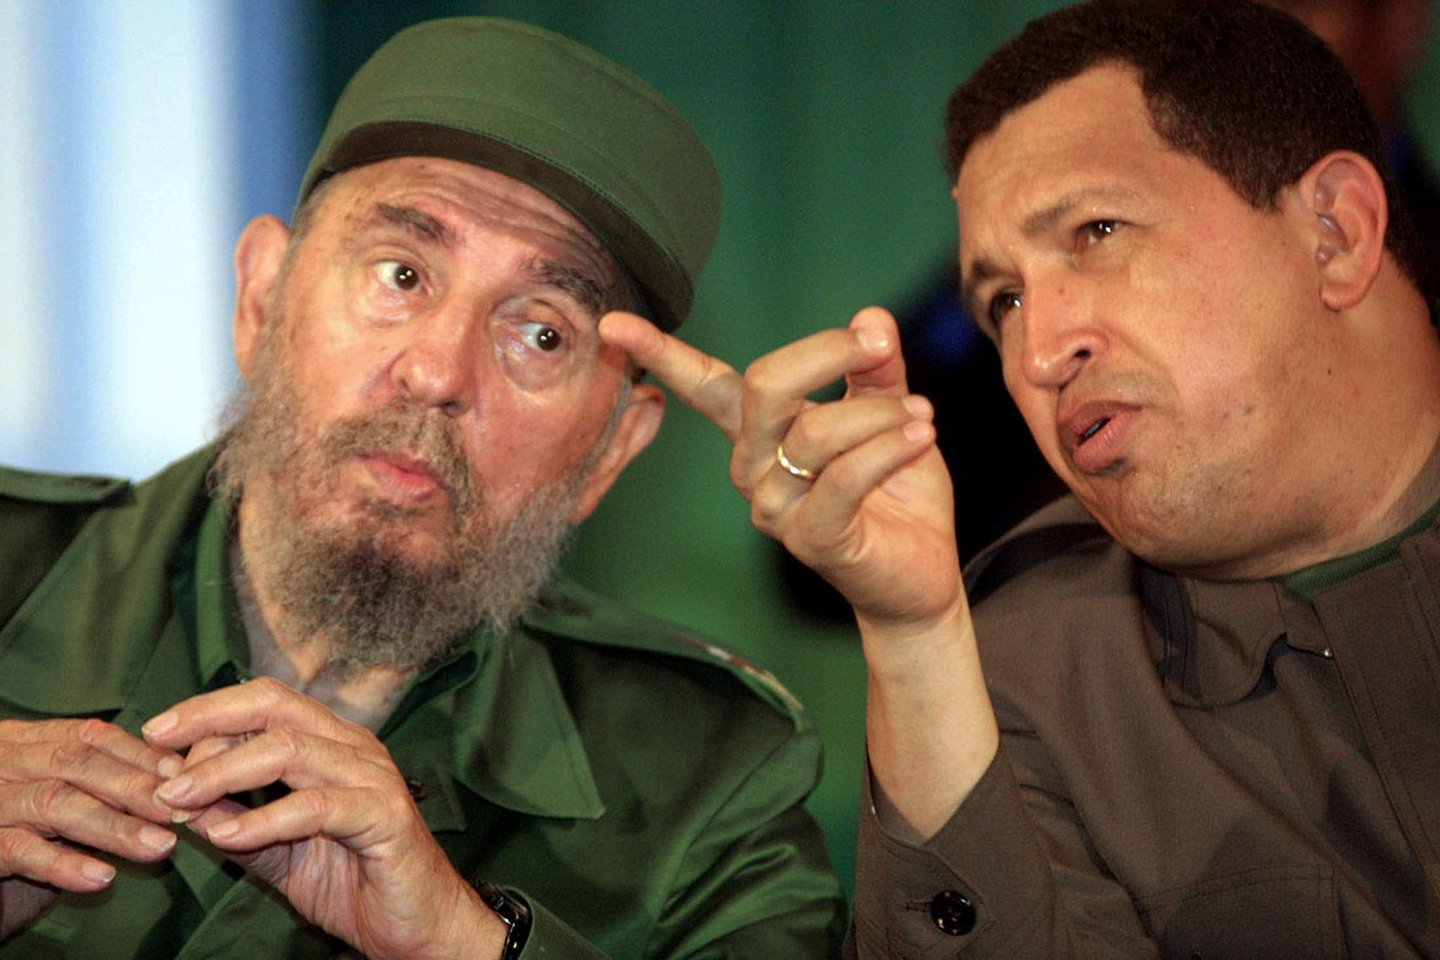 Cubano Fidel Castro (L) confers with Venezuelan President Hugo Chavez (R) 11 August 2001 in Bolivar City. Castro is visiting Venezuela to strengthen ties with Chavez, who has shown a keen interest in taking lessons from the Cuban president on introducing sweeping social change. Castro, who will turn 75 in two days after 42 years in power, arrived at Maiquetia airport outside Caracas on his sixth trip to Venezuela but his third since the charismatic Chavez, 47, took the president's post in February 1999. AFP PHOTO/ANDREW ALVAREZ (Photo credit should read ANDREW ALVAREZ/AFP/Getty Images)